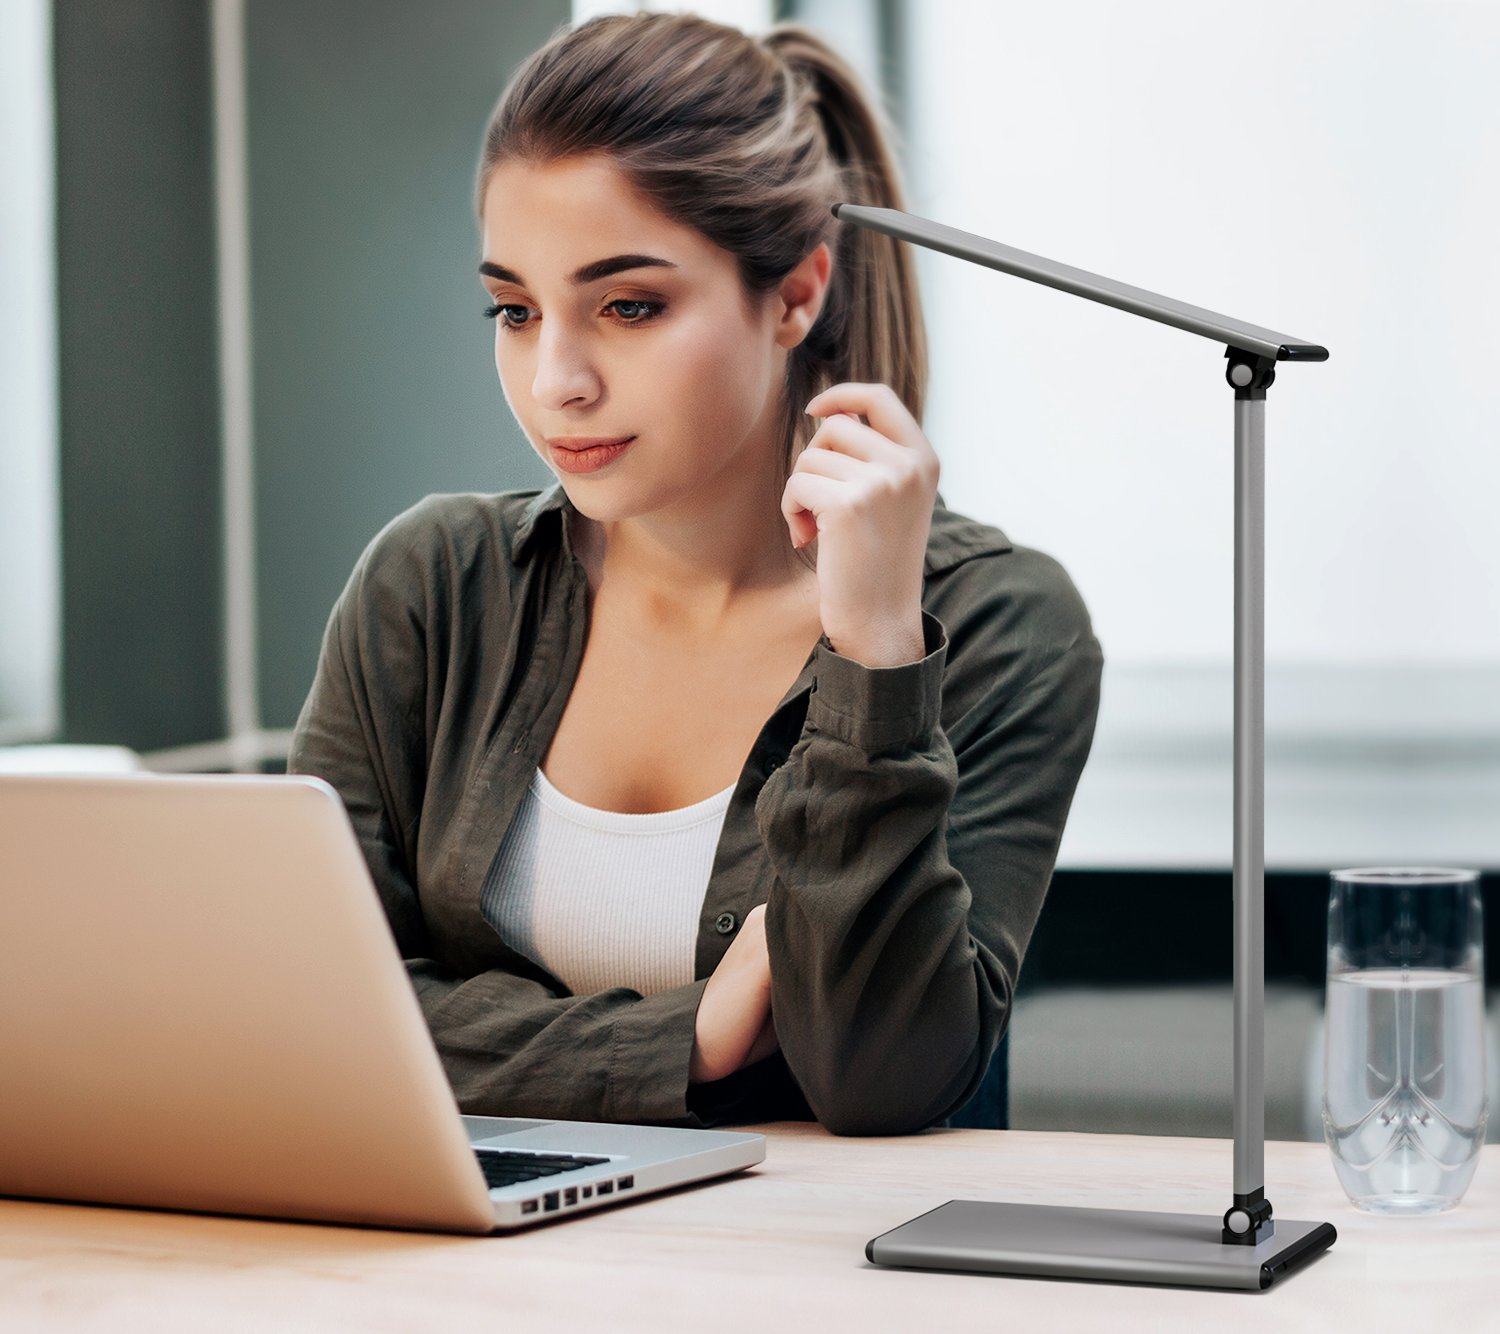 MoKo LED Desk Lamp, 8W Eye-Care Smart Touch Control Table Lamps with Rugged Aluminum Alloy Body, Stepless Adjusted Color Temperature/Brightness Level, Rotatable Arm/Head, Memory Function - Dark Gray by MoKo (Image #8)